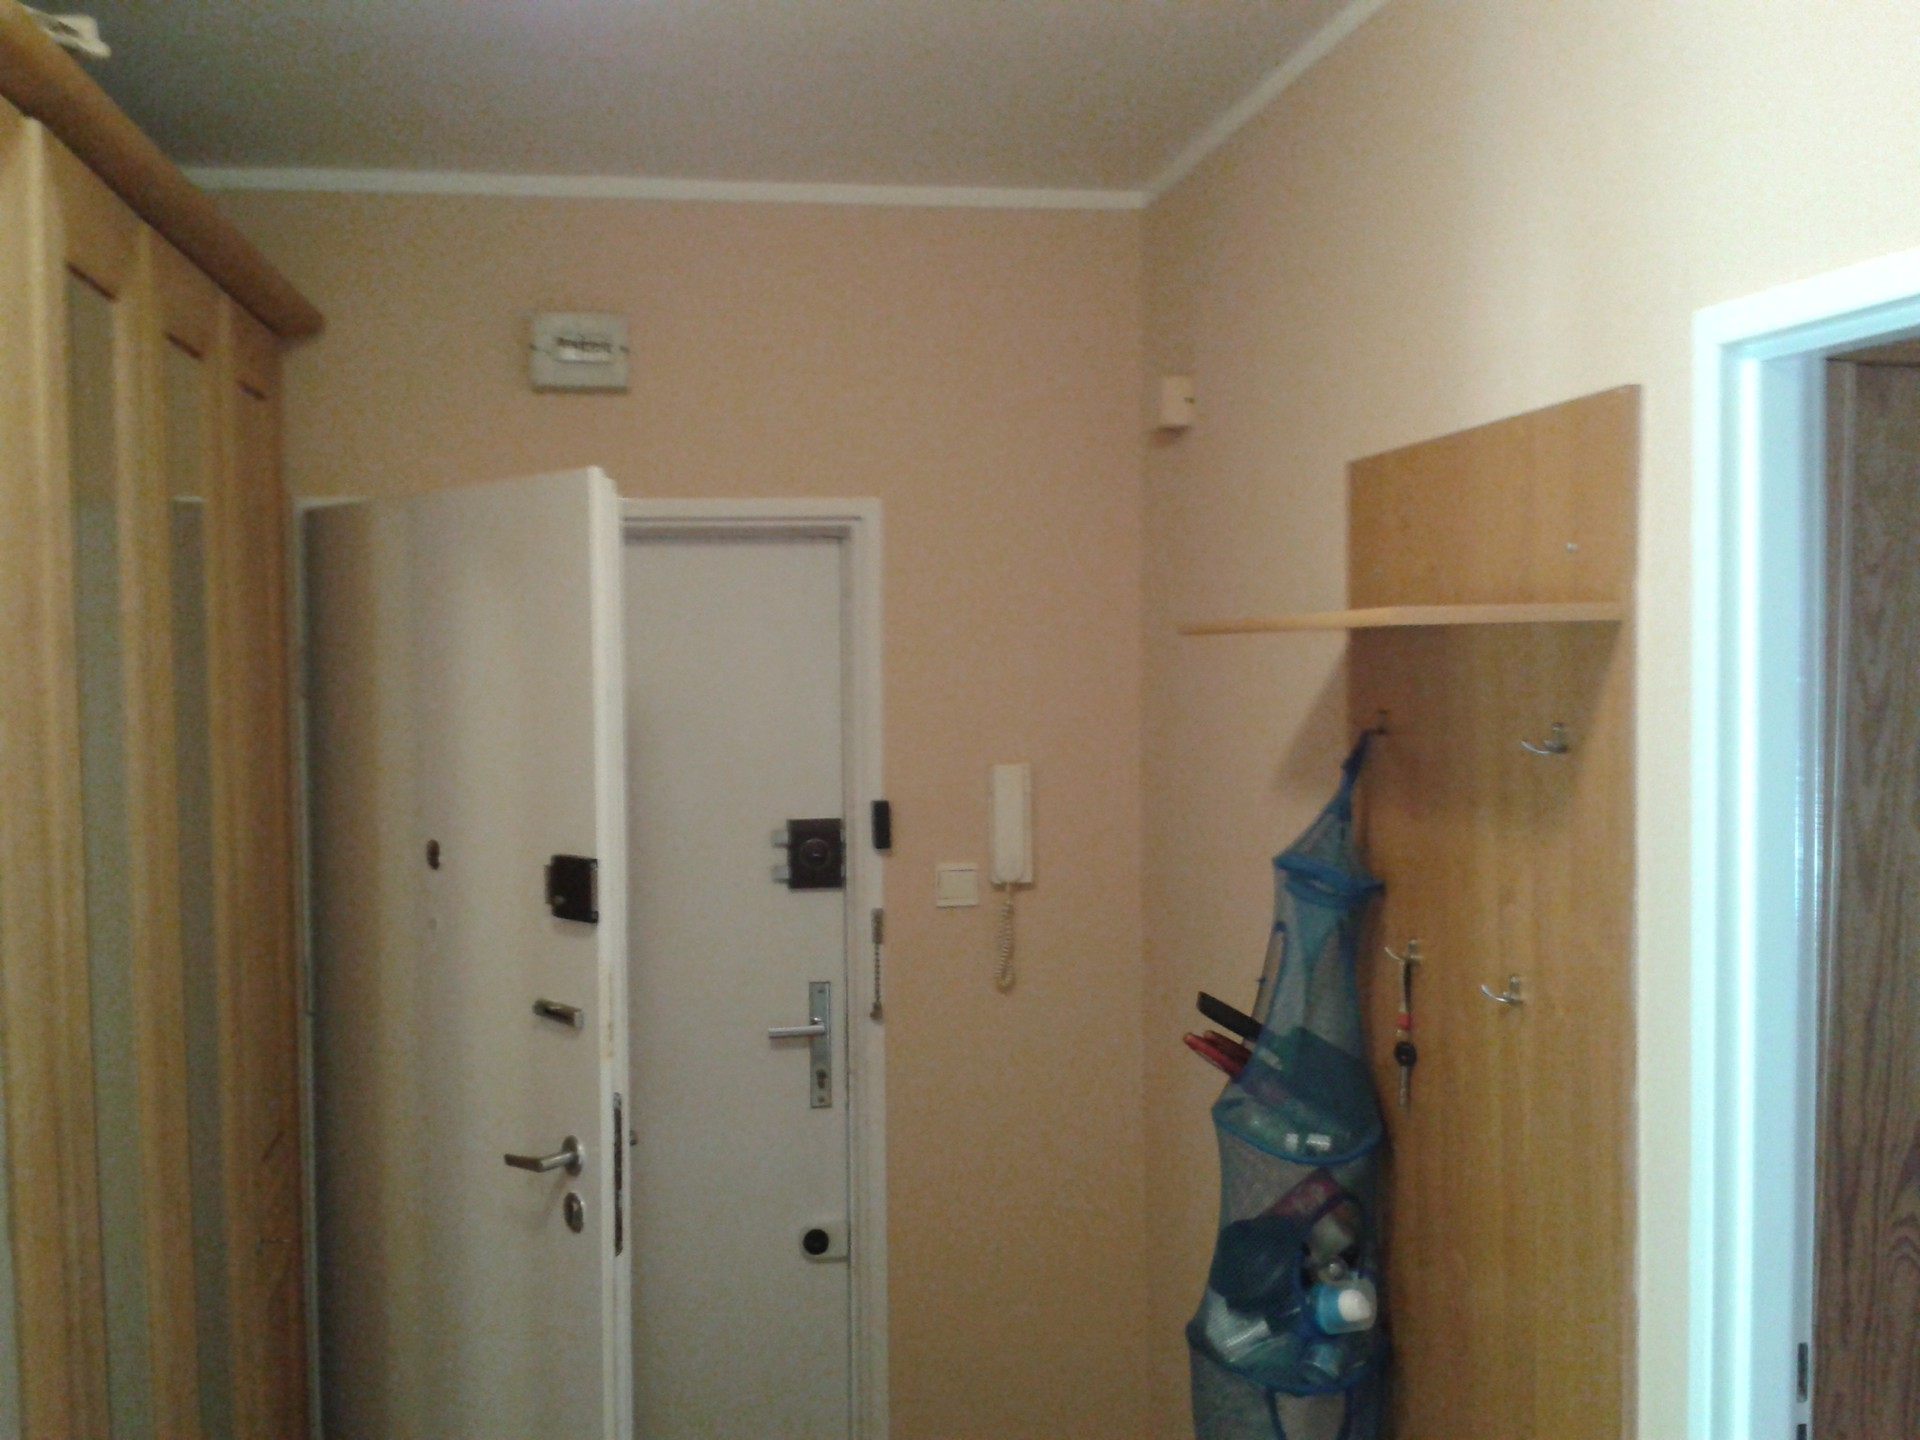 Rooms: Large Room 20m2 For Rent In A Two-room Apartment